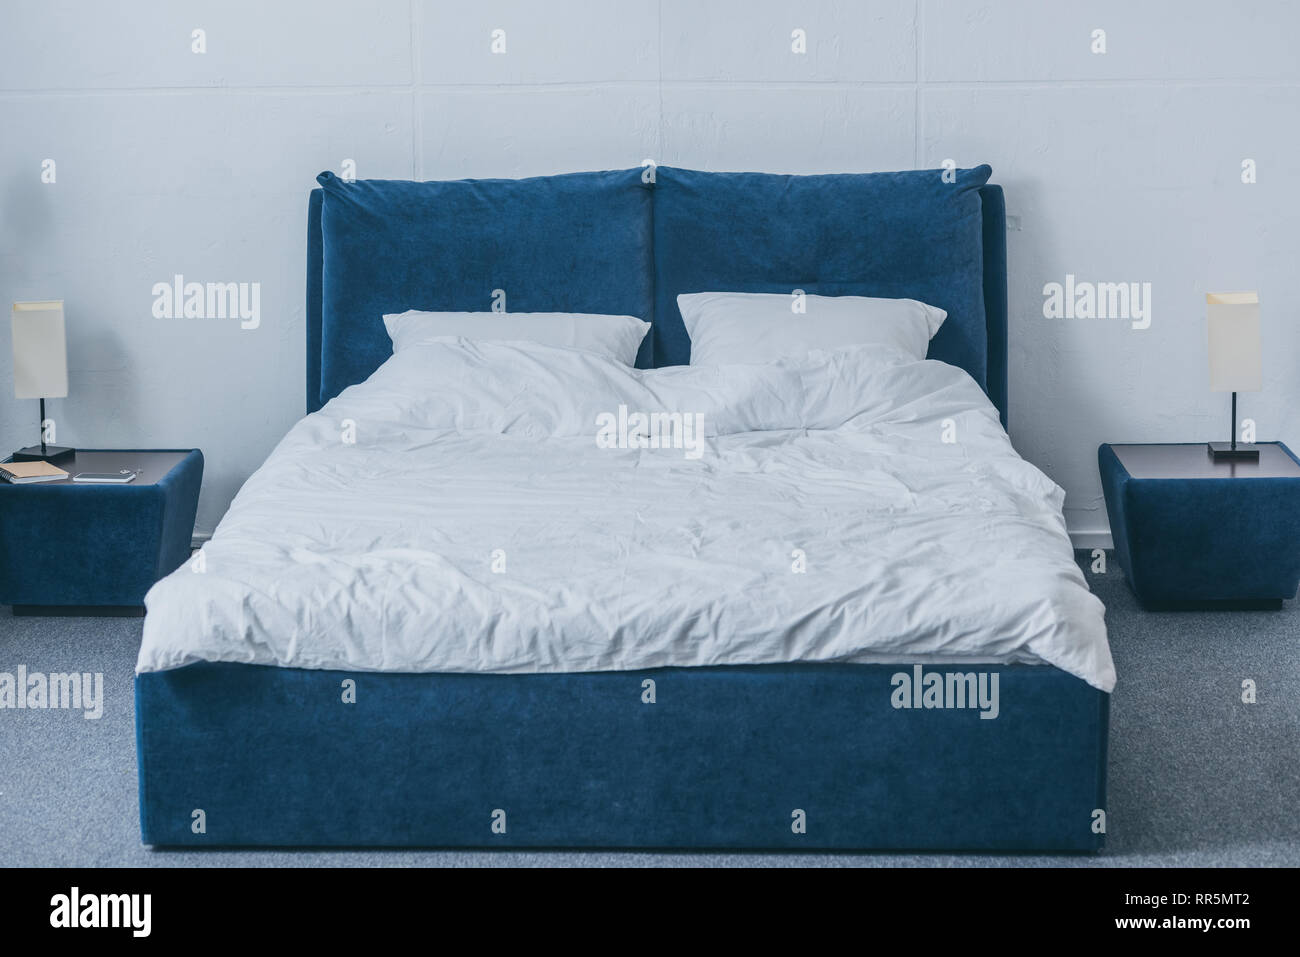 Modern Interior Design Of Bedroom With Bedside Tables Lamps And Bed With White Bedding Stock Photo Alamy